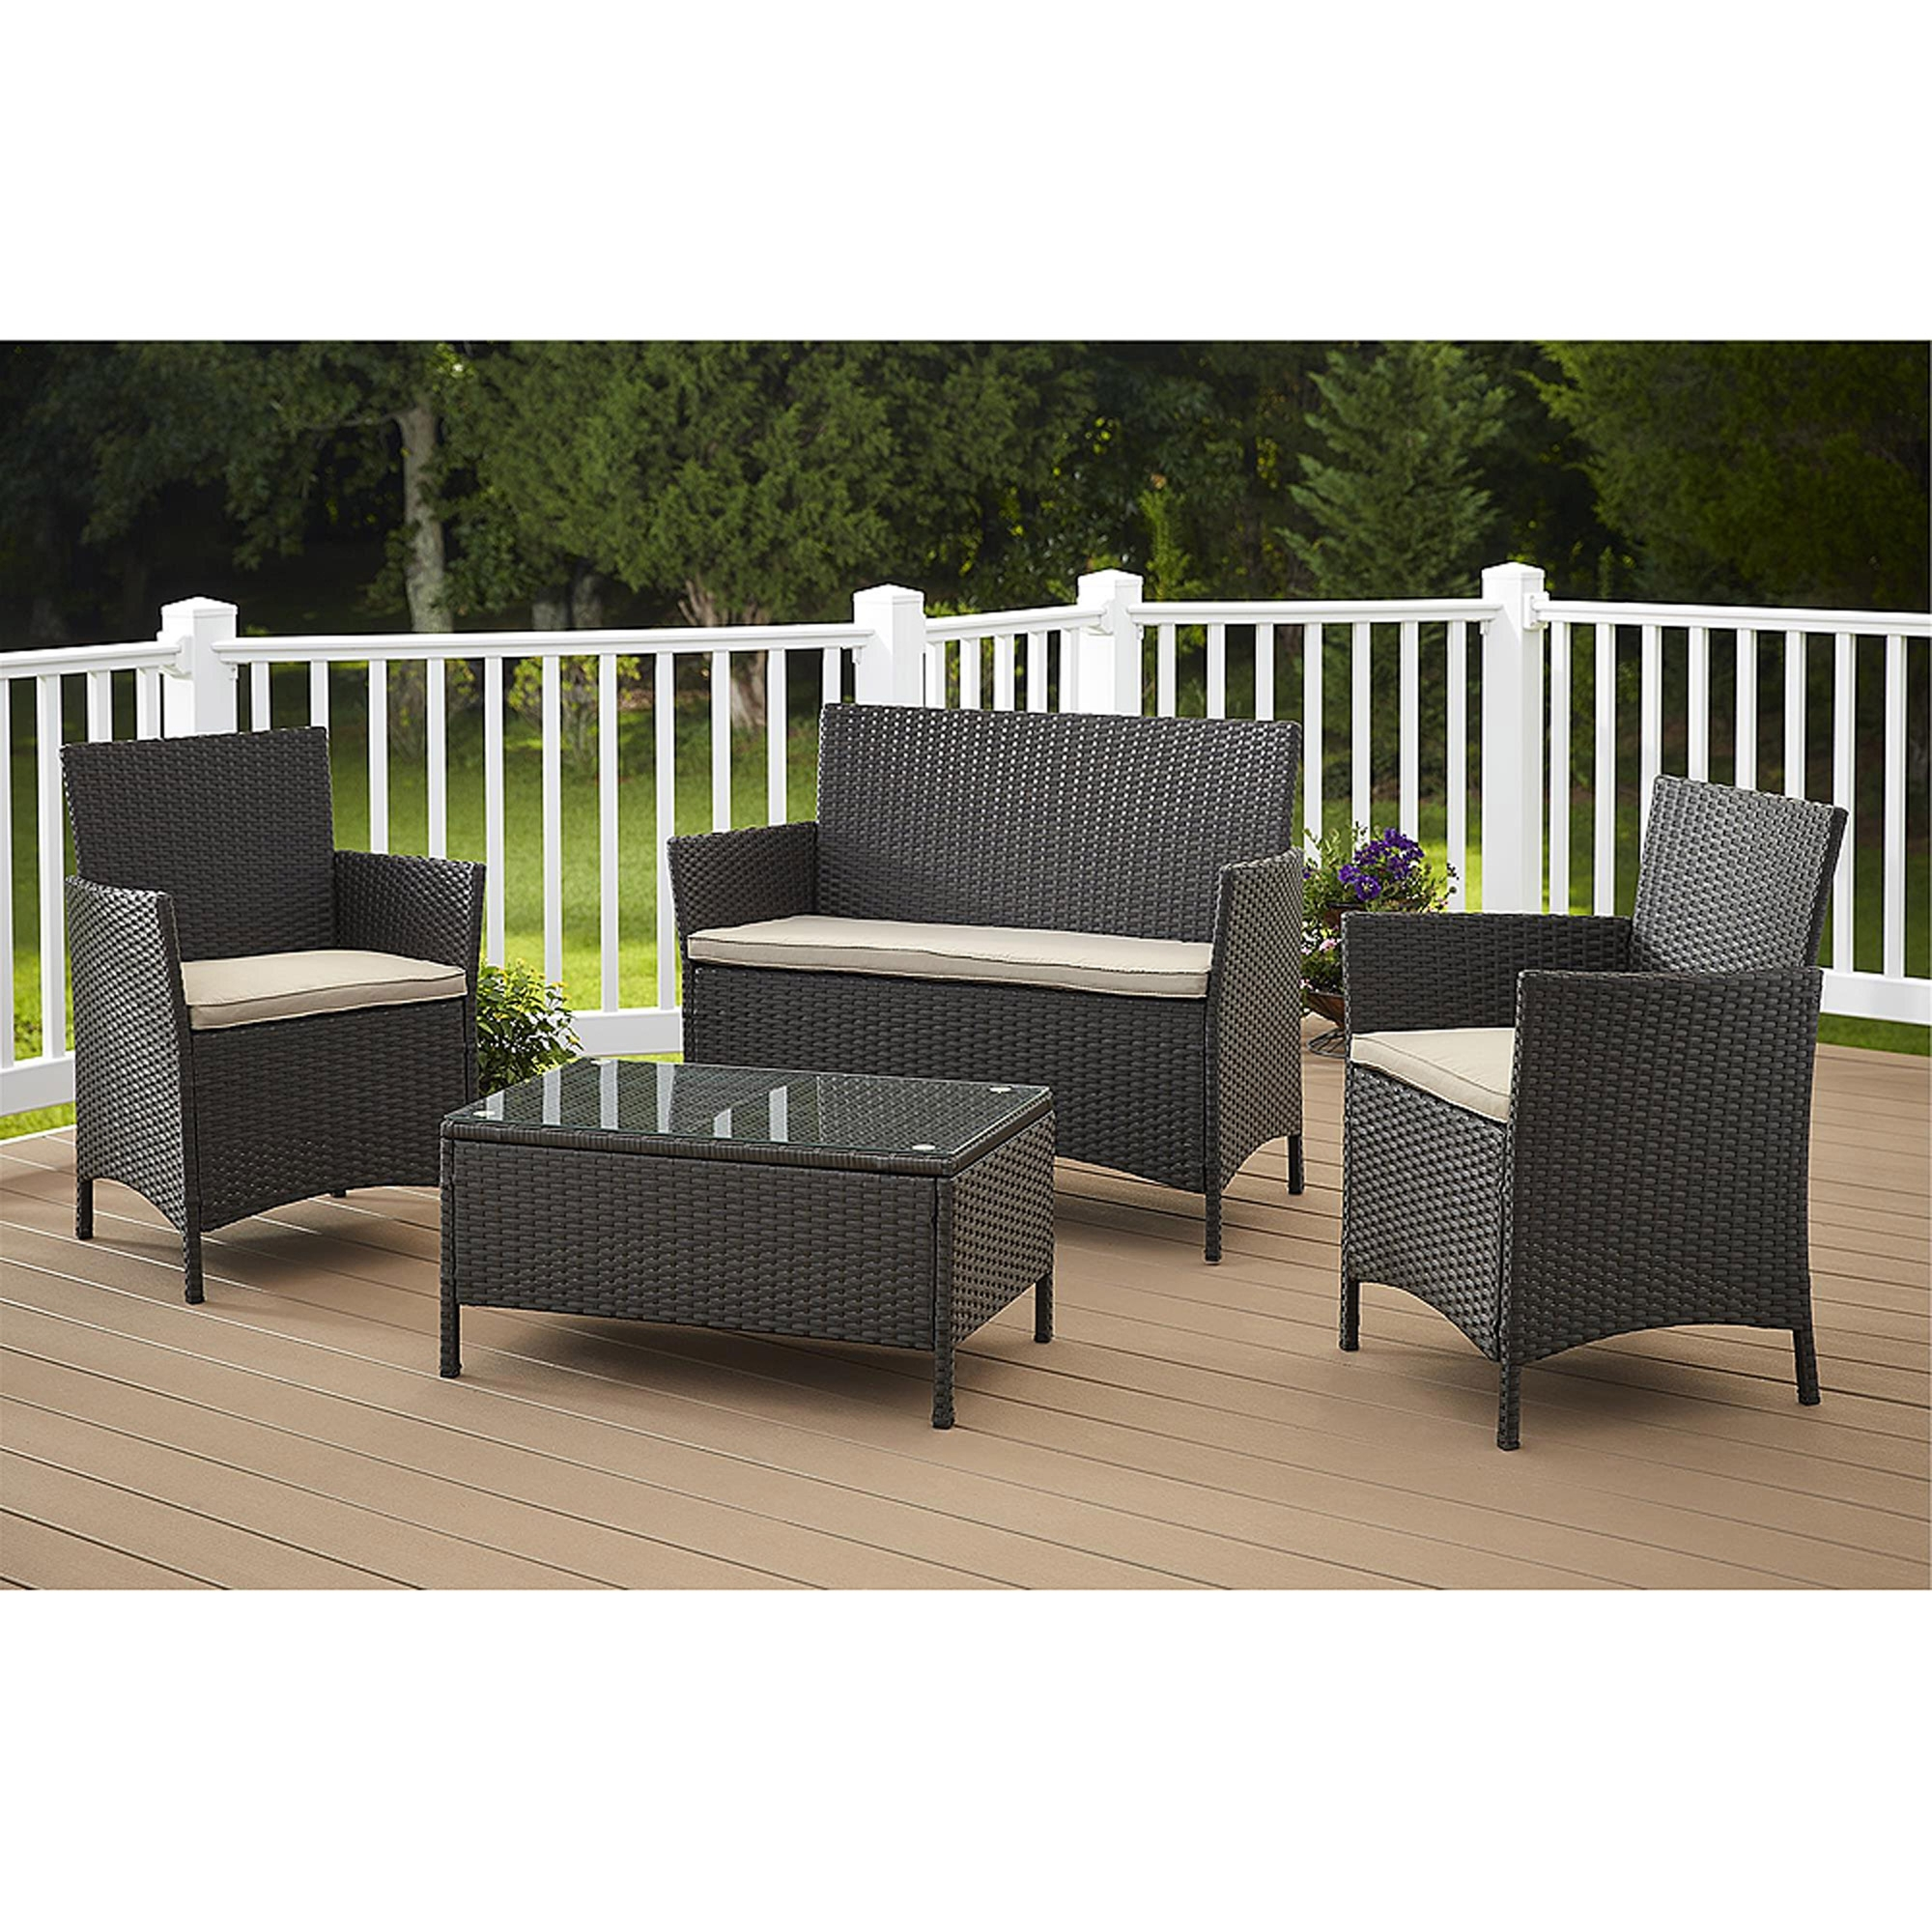 Newest Cosco Outdoor Furniture Jamaica 4 Piece Resin Wicker Patio Furniture Intended For Wicker 4Pc Patio Conversation Sets With Navy Cushions (View 7 of 15)